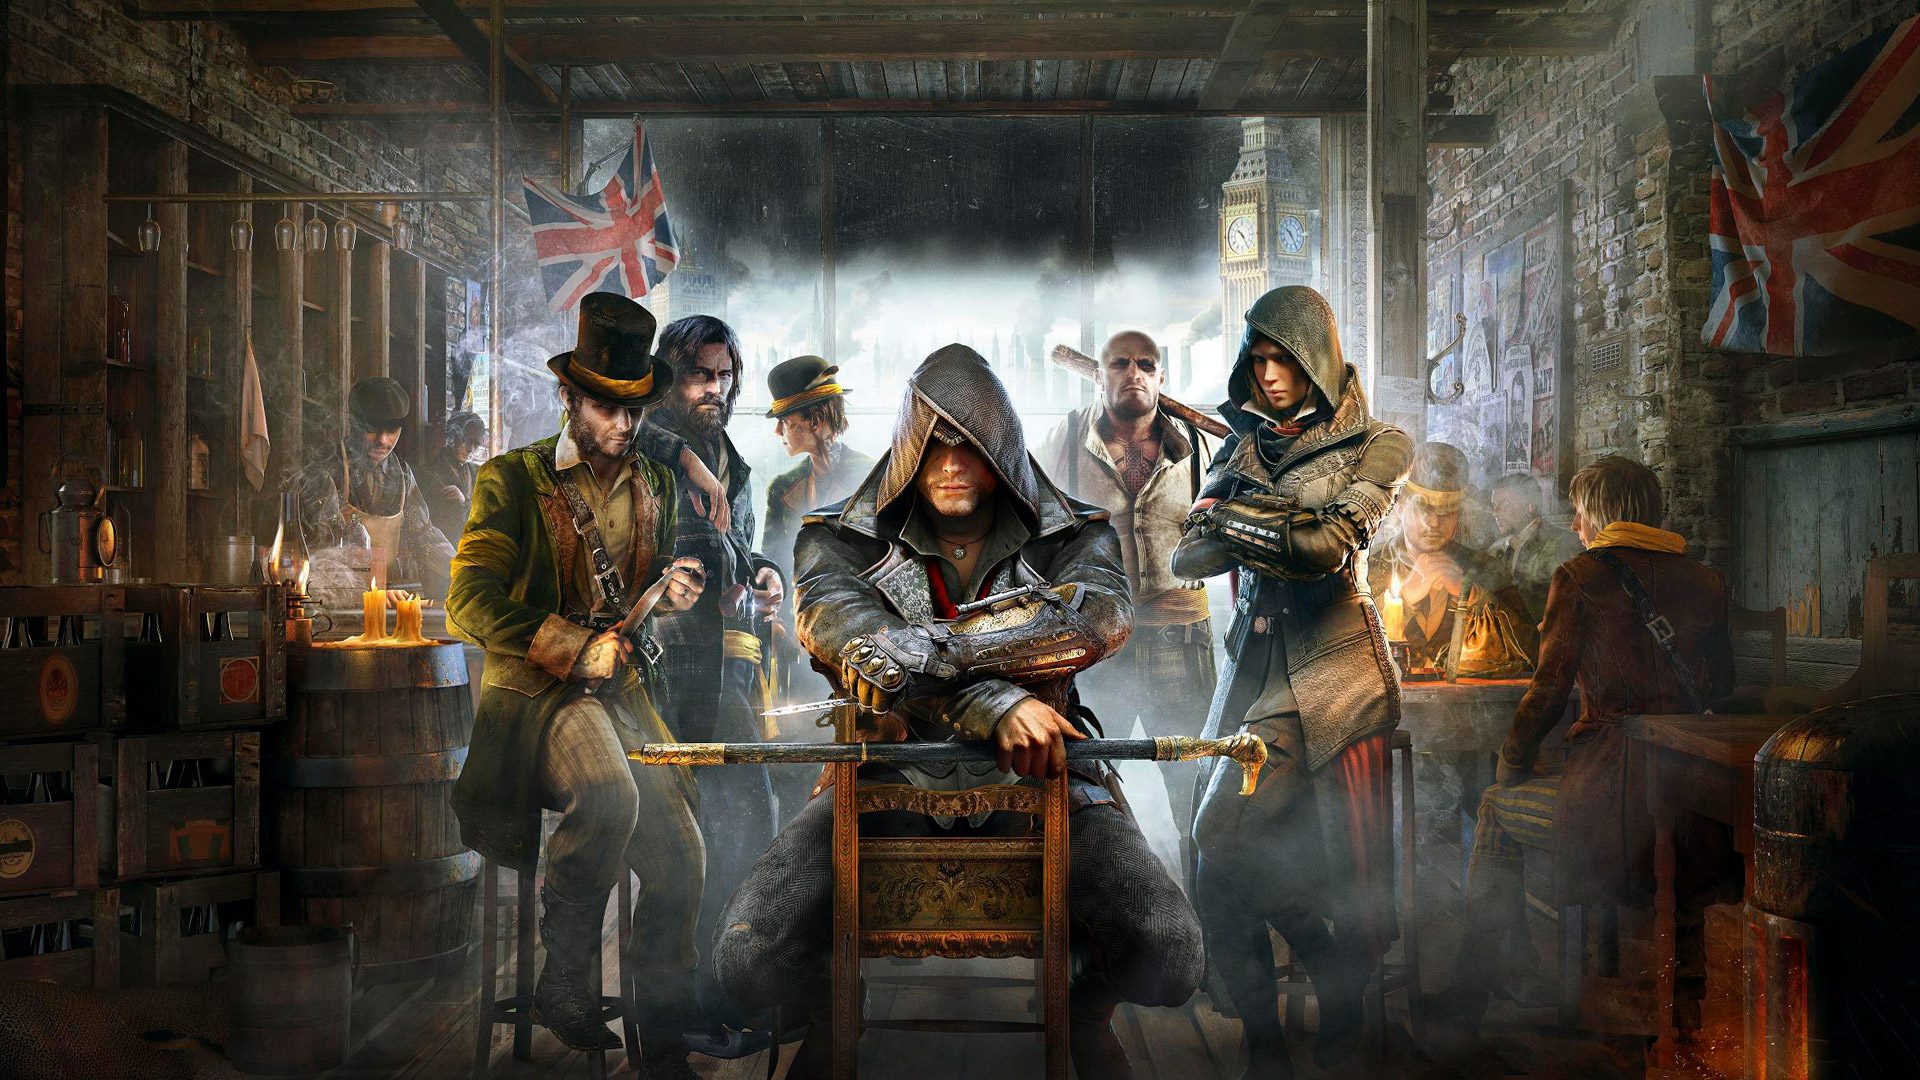 Assassins Creed Syndicate Wallpaper in 1920x1080 1920x1080